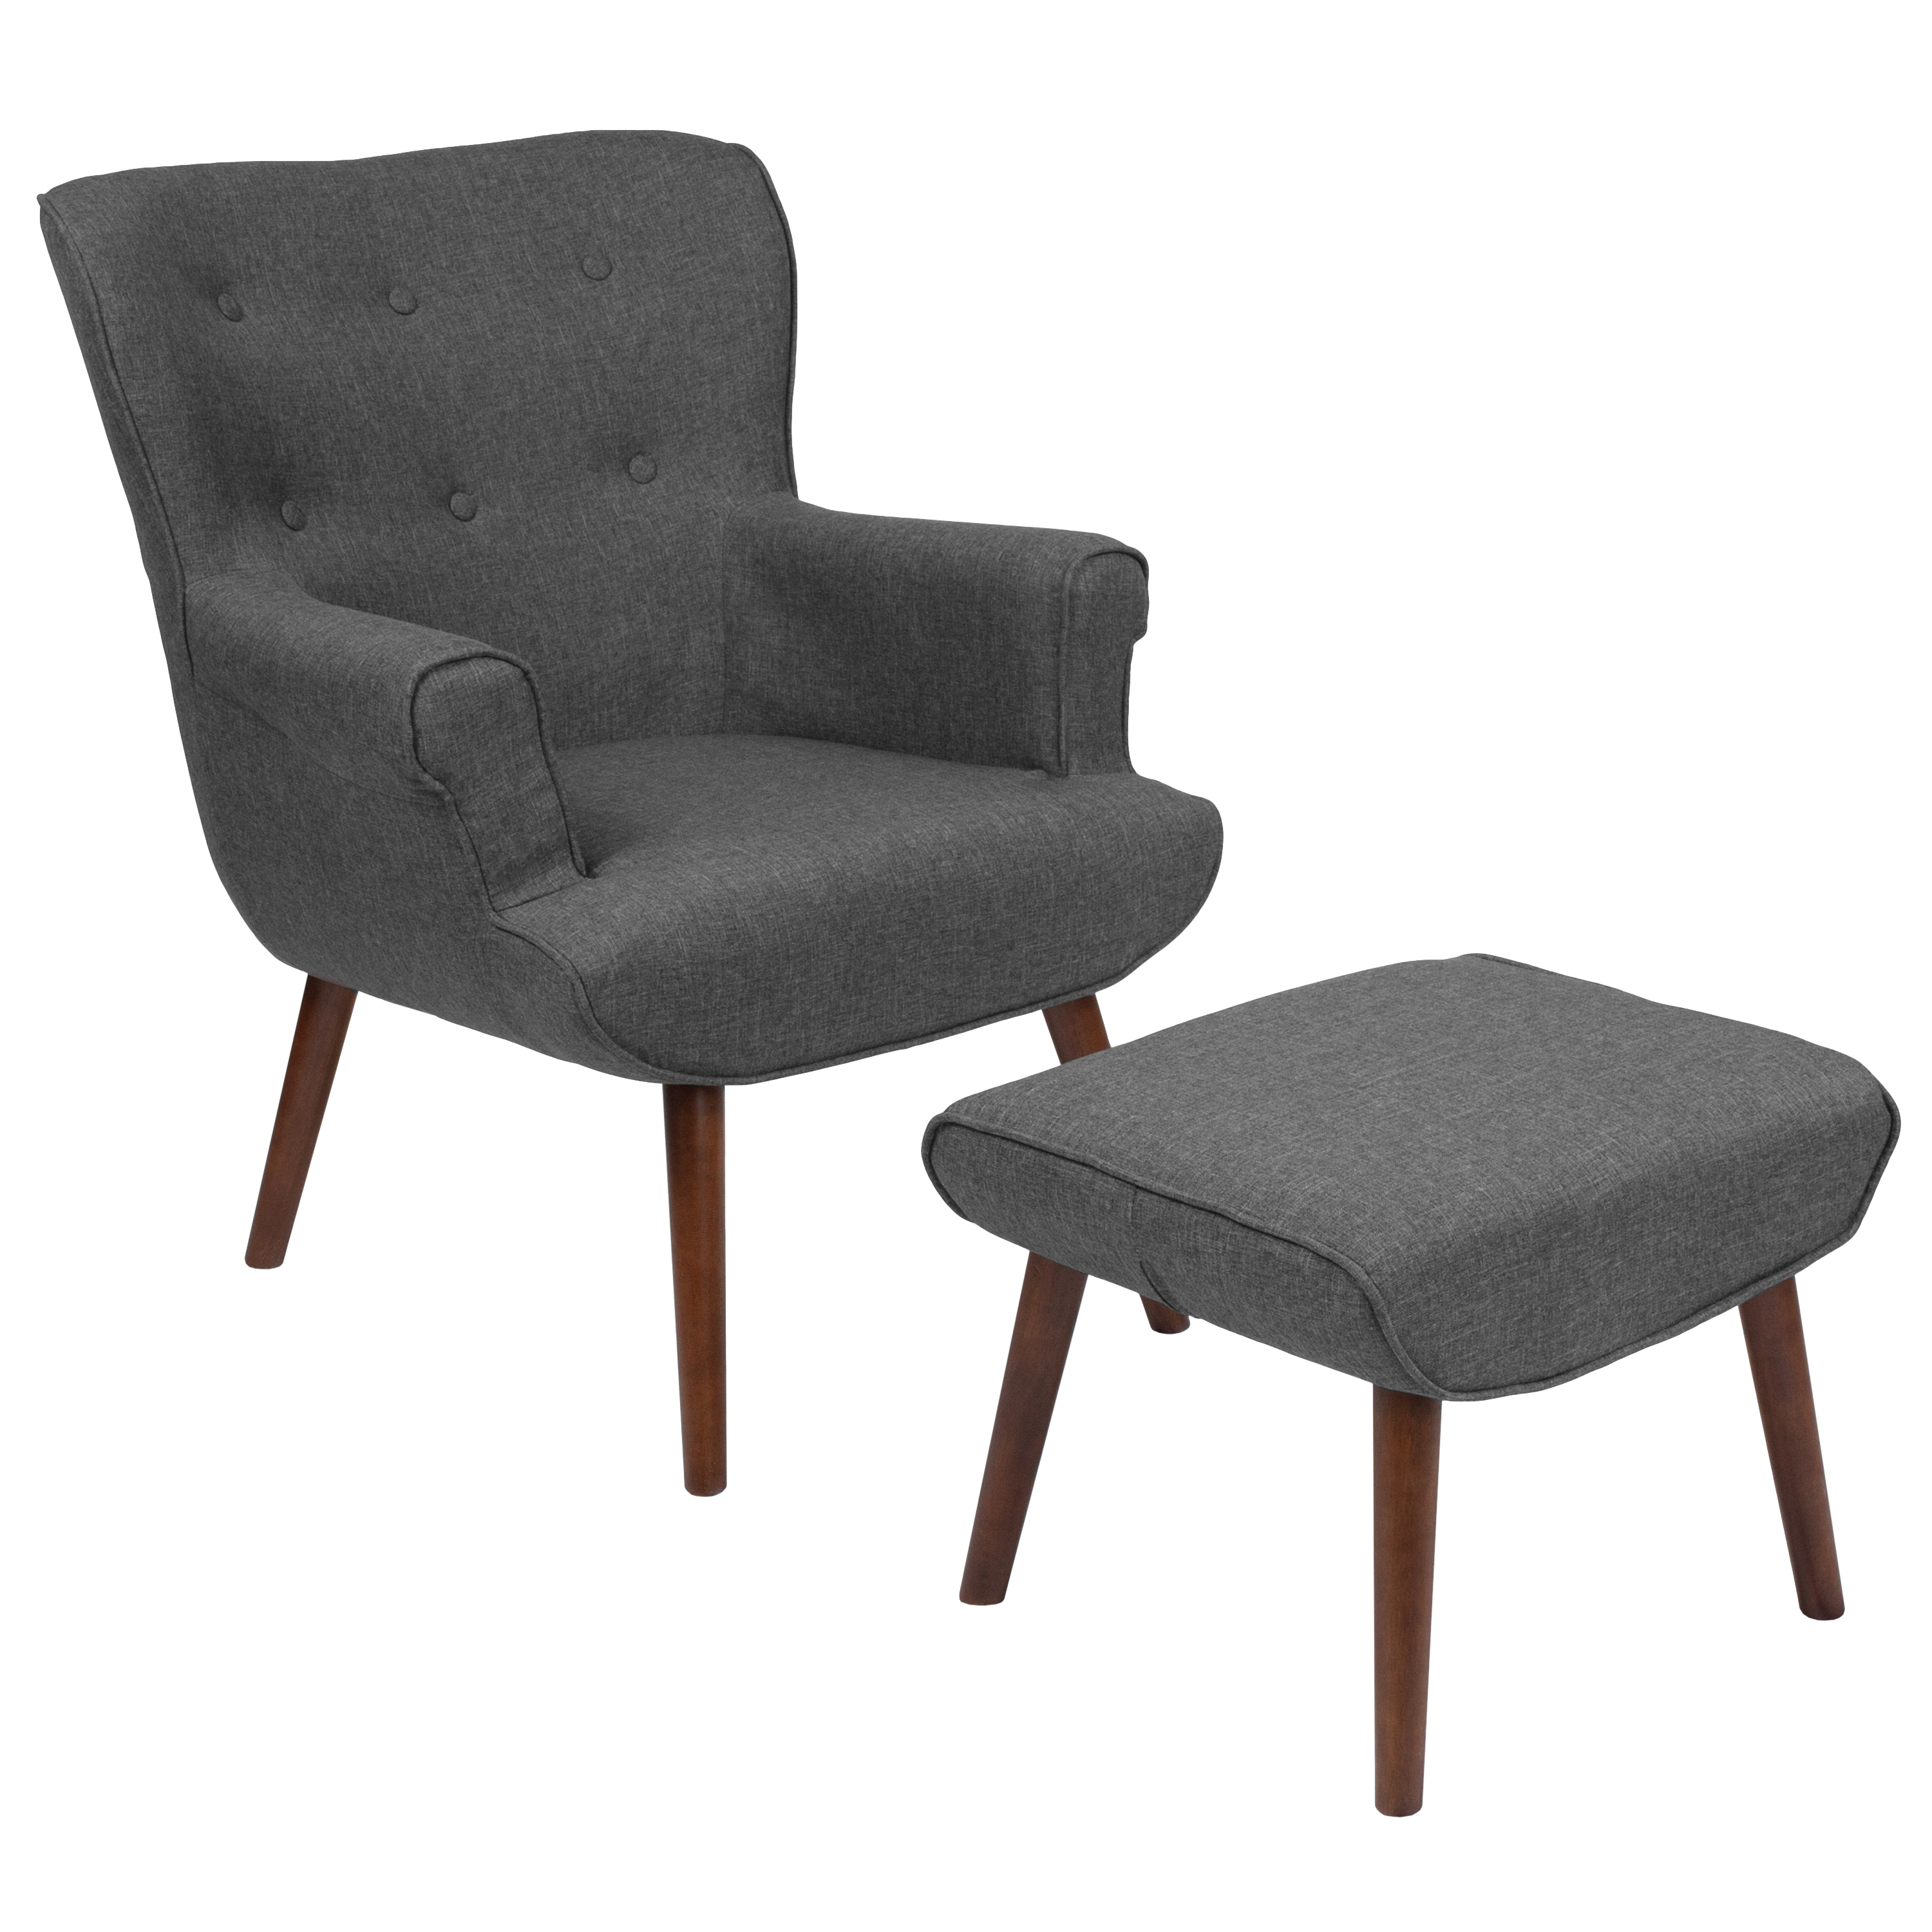 Flash Furniture Bayton Upholstered Wingback Chair with Ottoman in Dark Gray Fabric